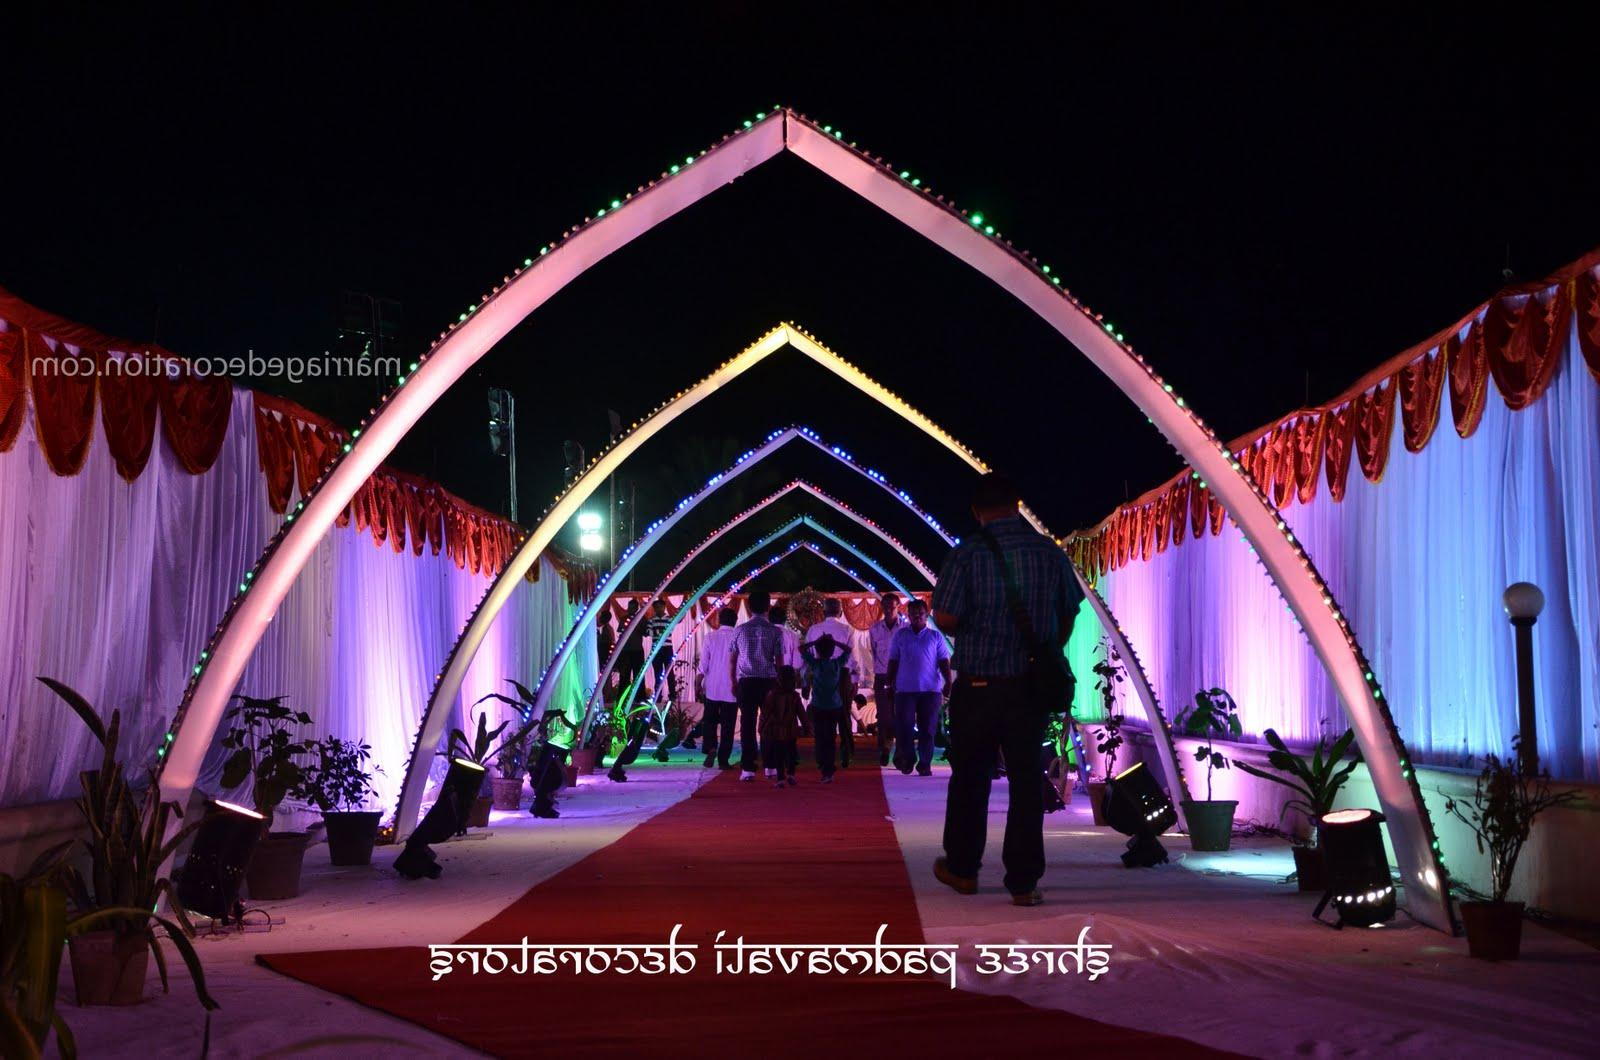 Sri Lakshmi Flower Decorations telugu wedding decorations